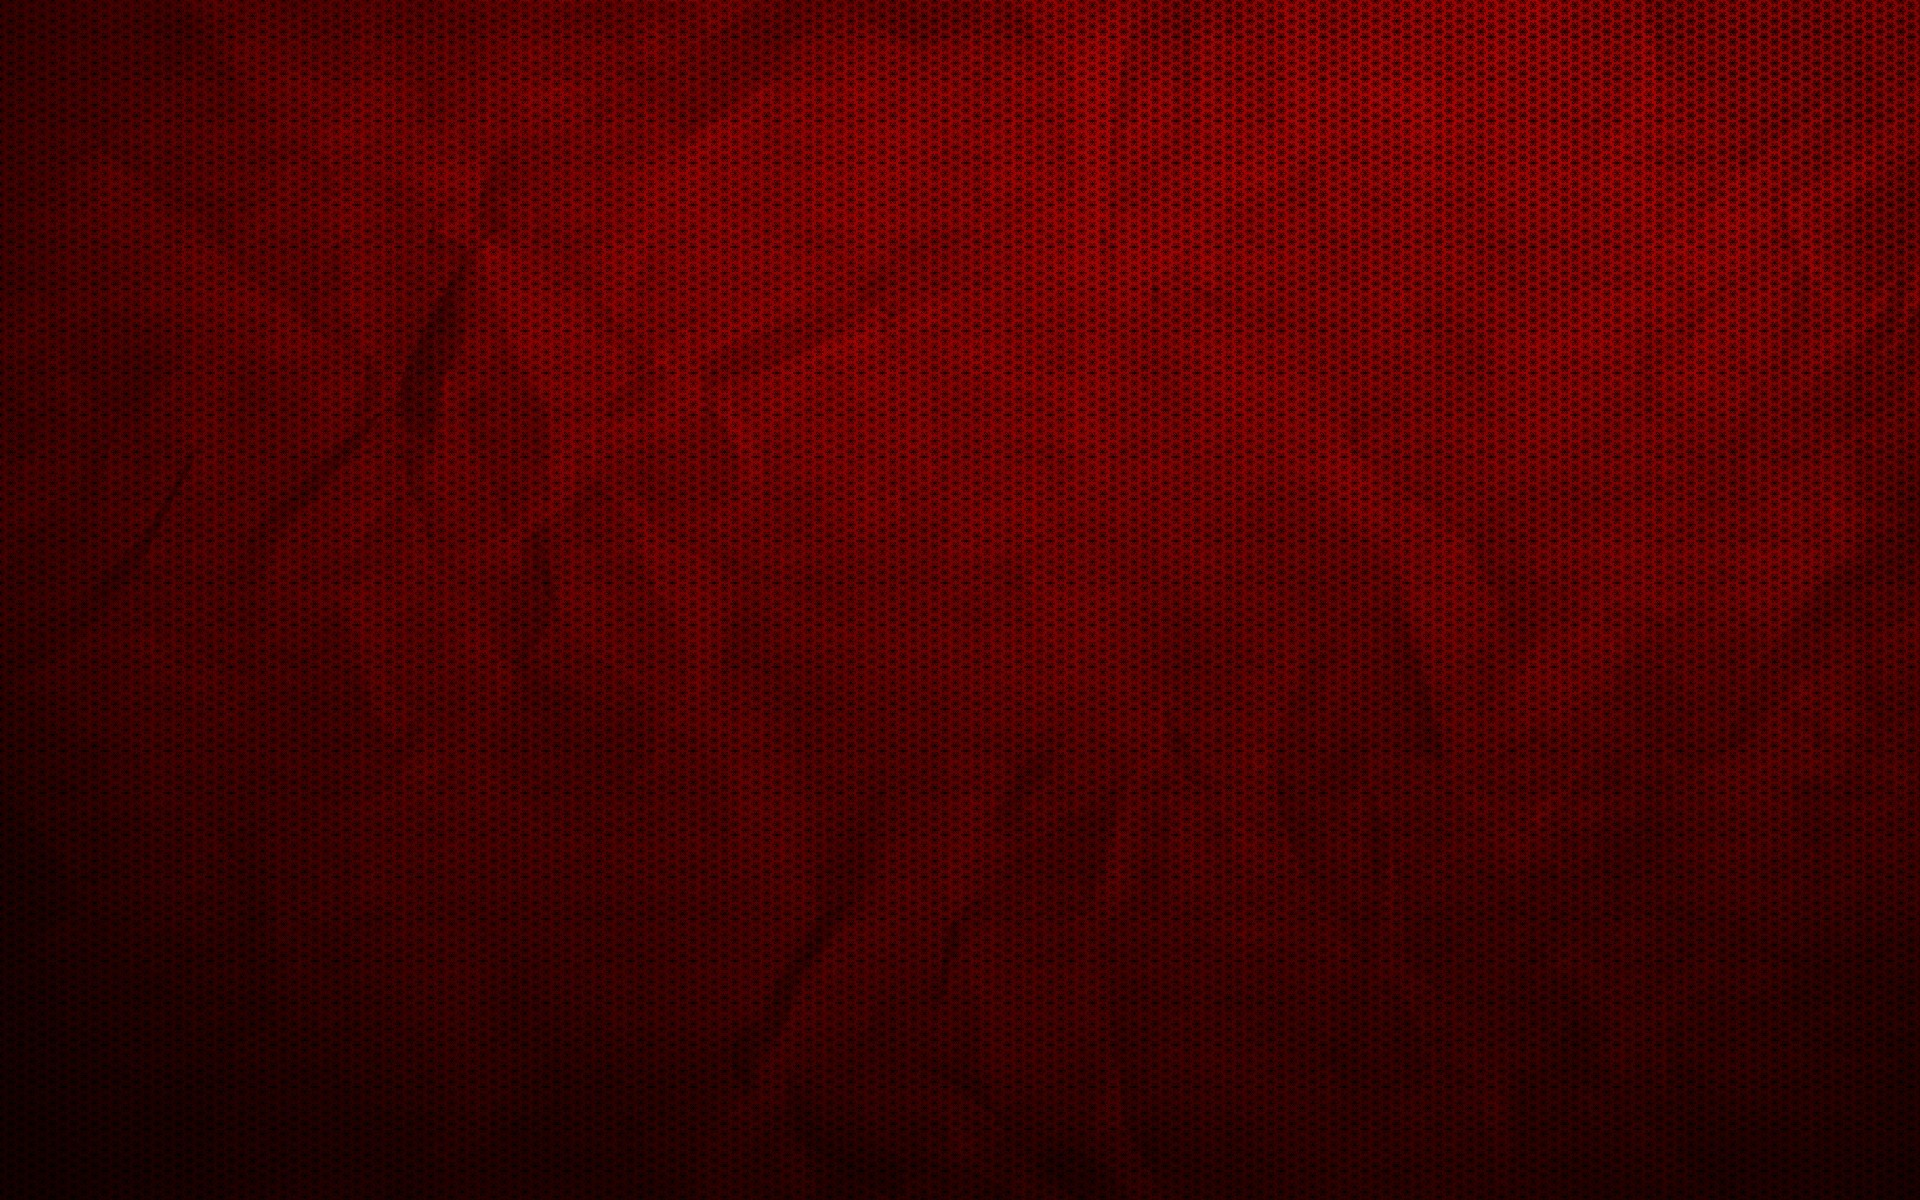 Plain Wallpapers HD maroon dotted